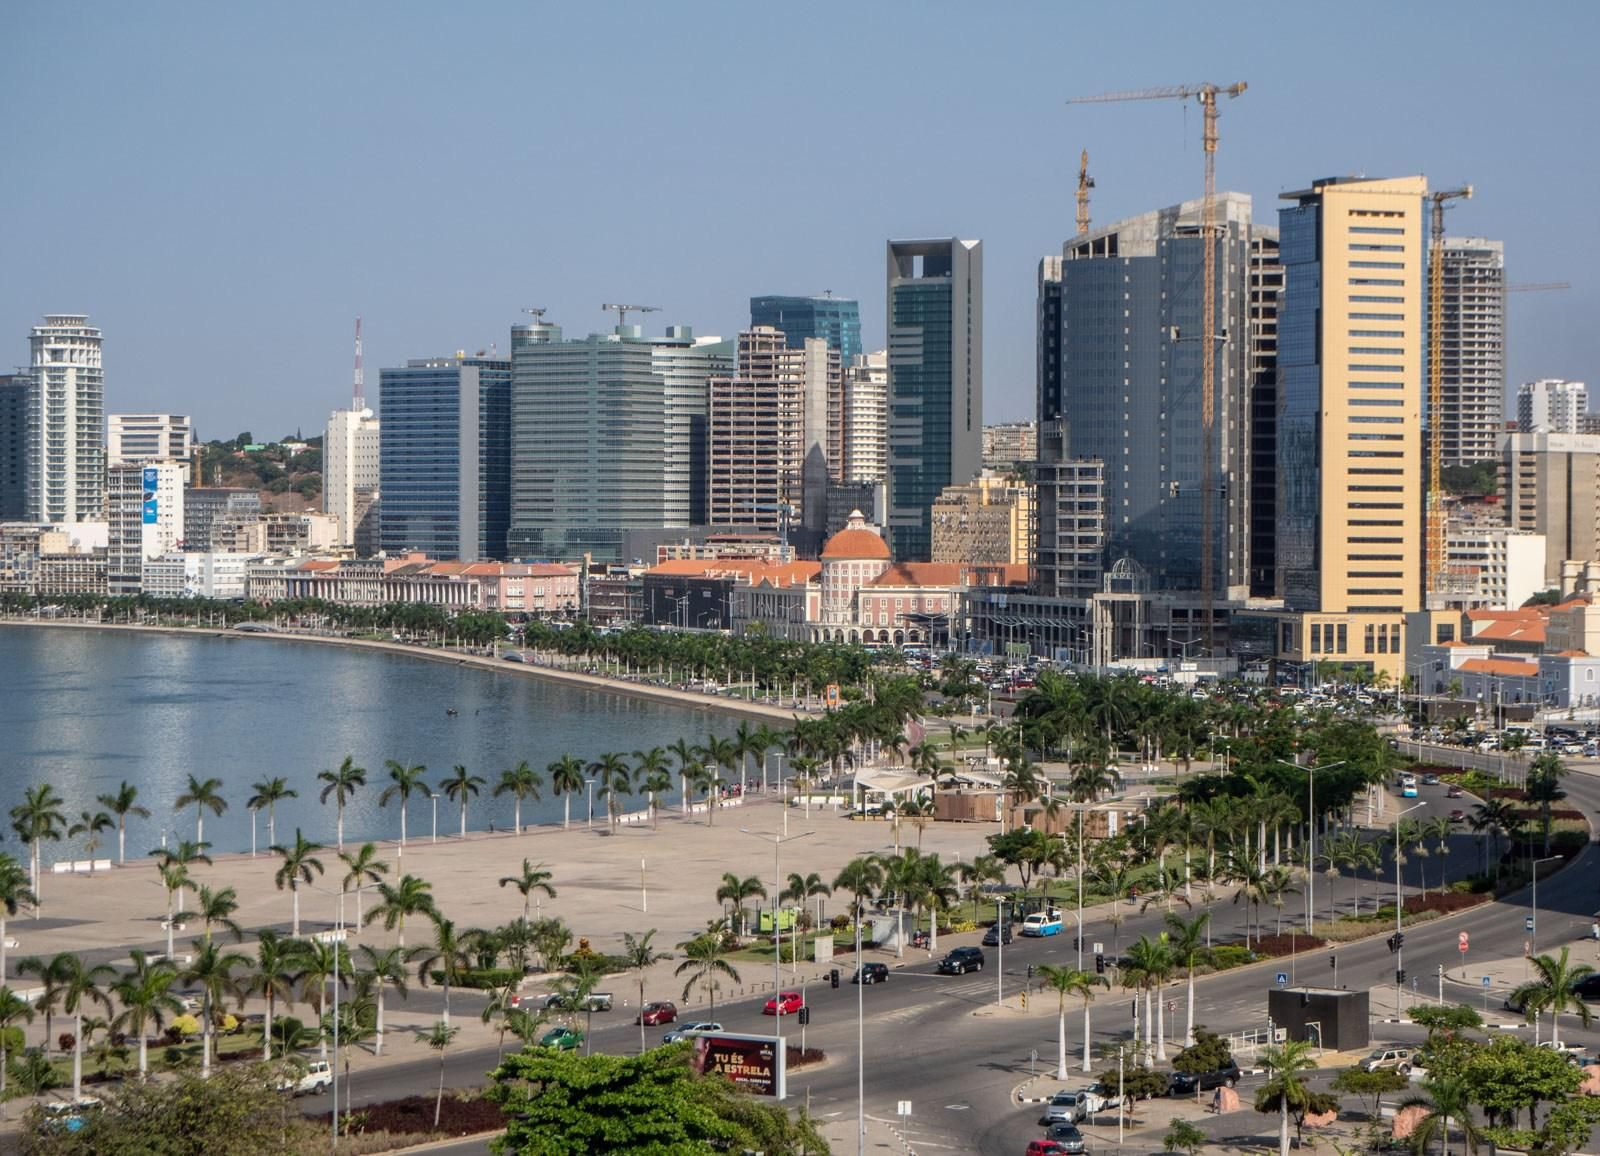 Luanda Angola City Cities Buildings Photography Africa Travel Cool Places To Visit Visit South Africa